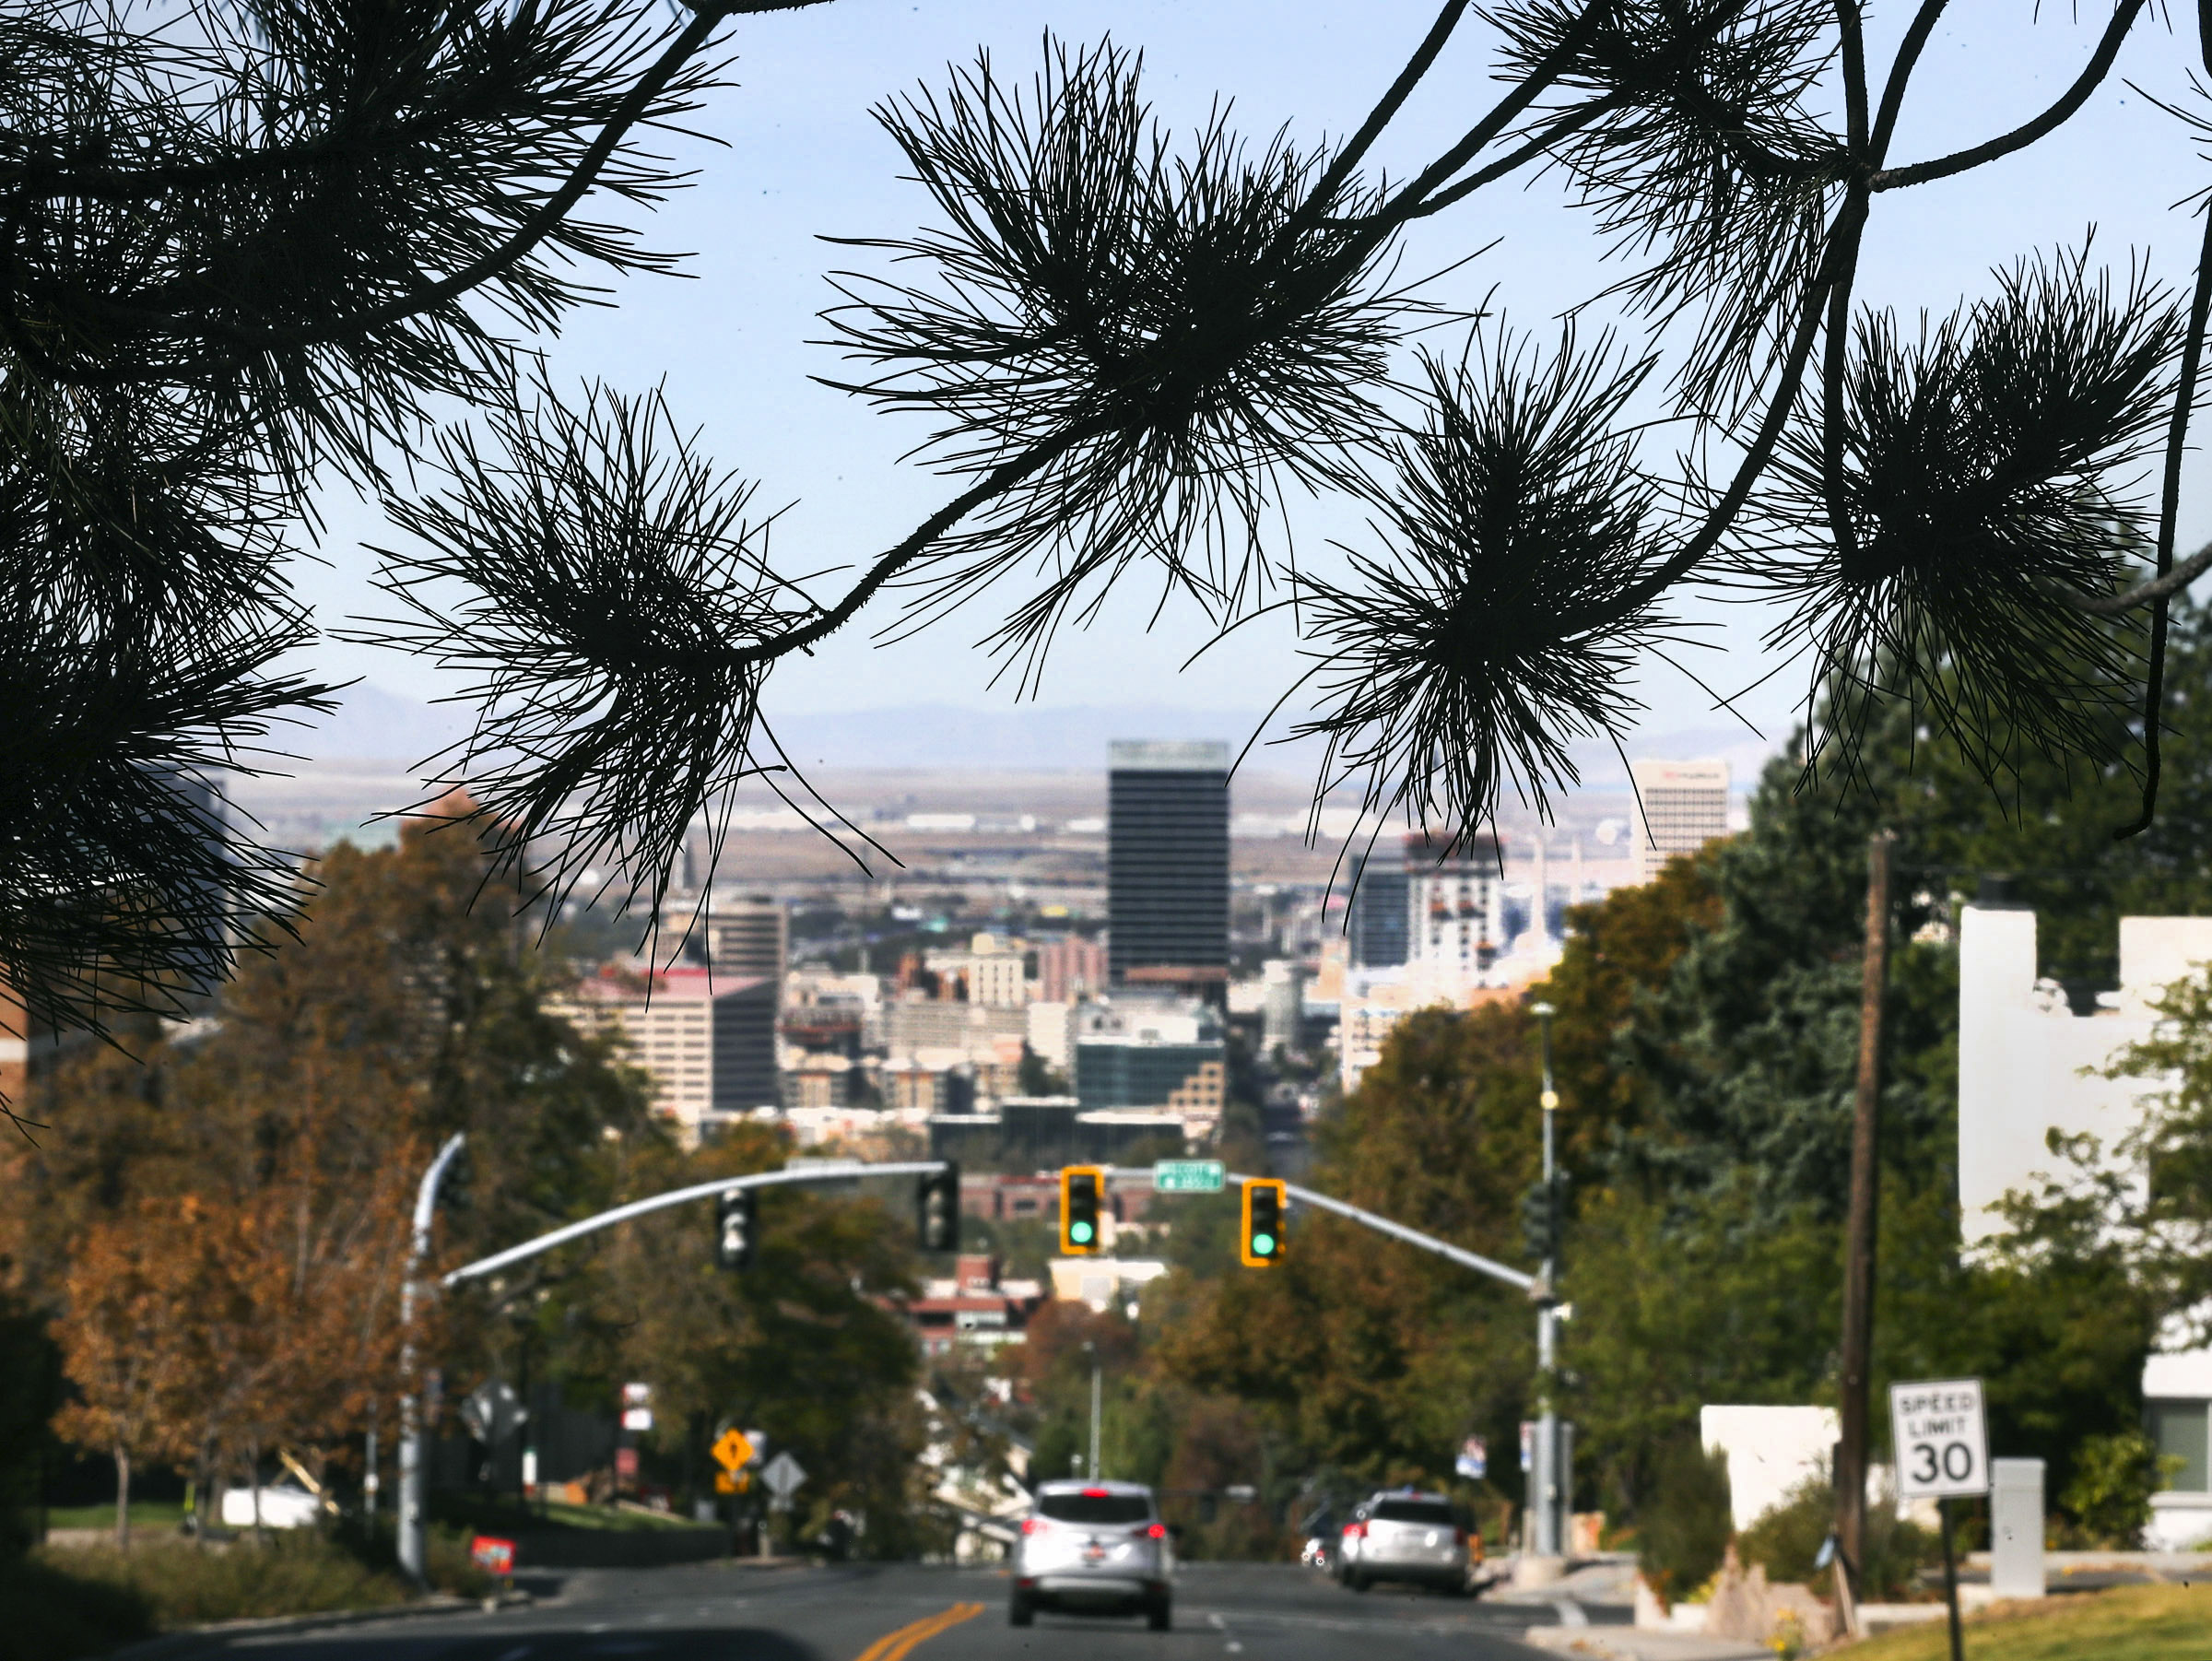 Branches of Austrian pine trees on North Campus Drive on the University of Utah campus frame the Salt Lake City skyline on Monday, Sept. 28, 2020. A new U. study looks at air pollution by slicing through pine tree needles. The team selected four Austrian pine trees on North Campus Drive and collected pine needles twice in 2017 after a summer of relatively good air and again in December during some of that winter's worst air quality.